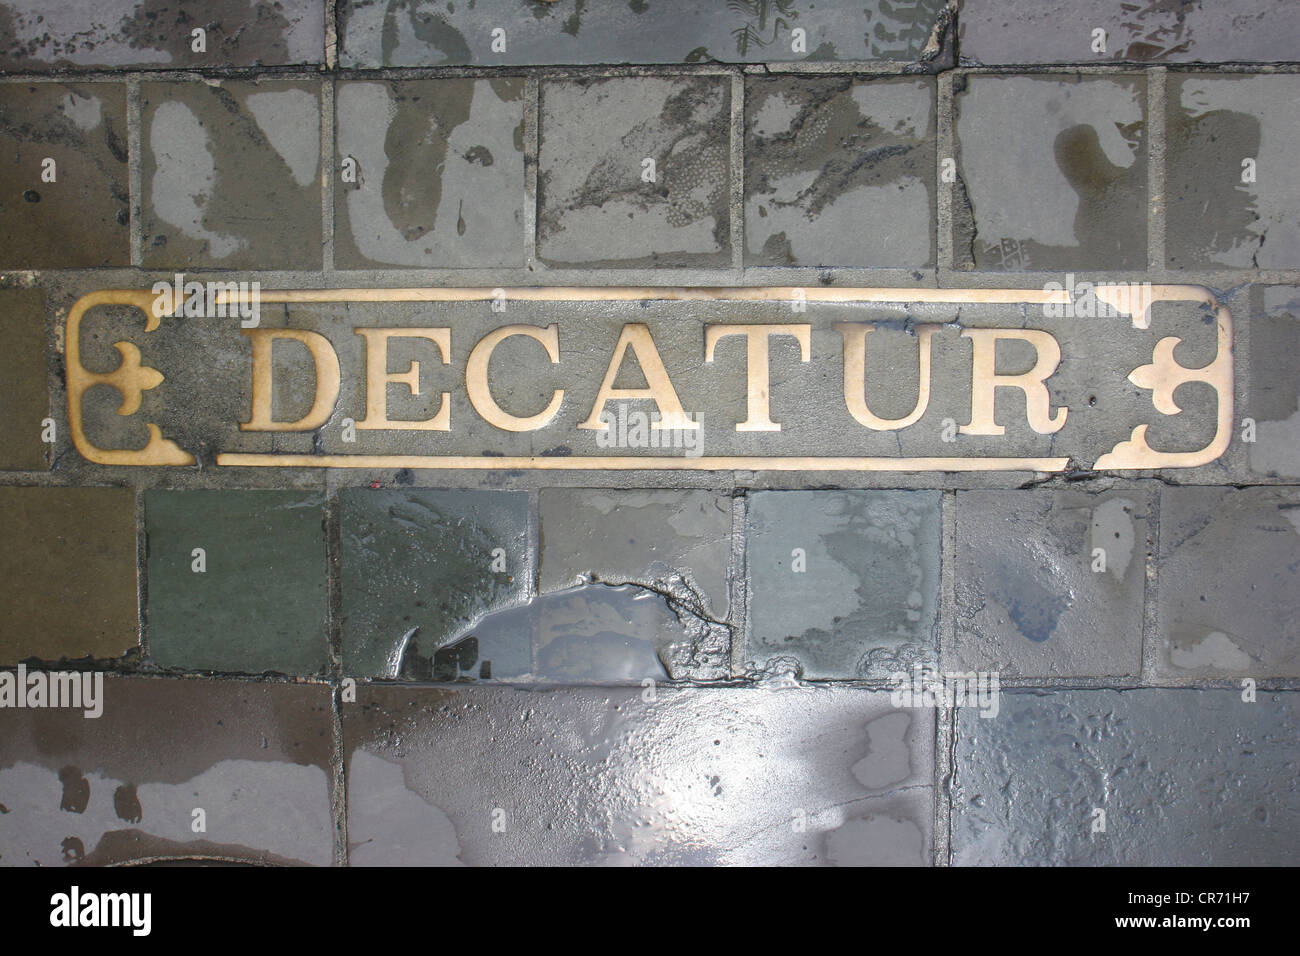 The street name on the pavement of Decatur Street, home of some of New Orleans' important jazz venues - Stock Image